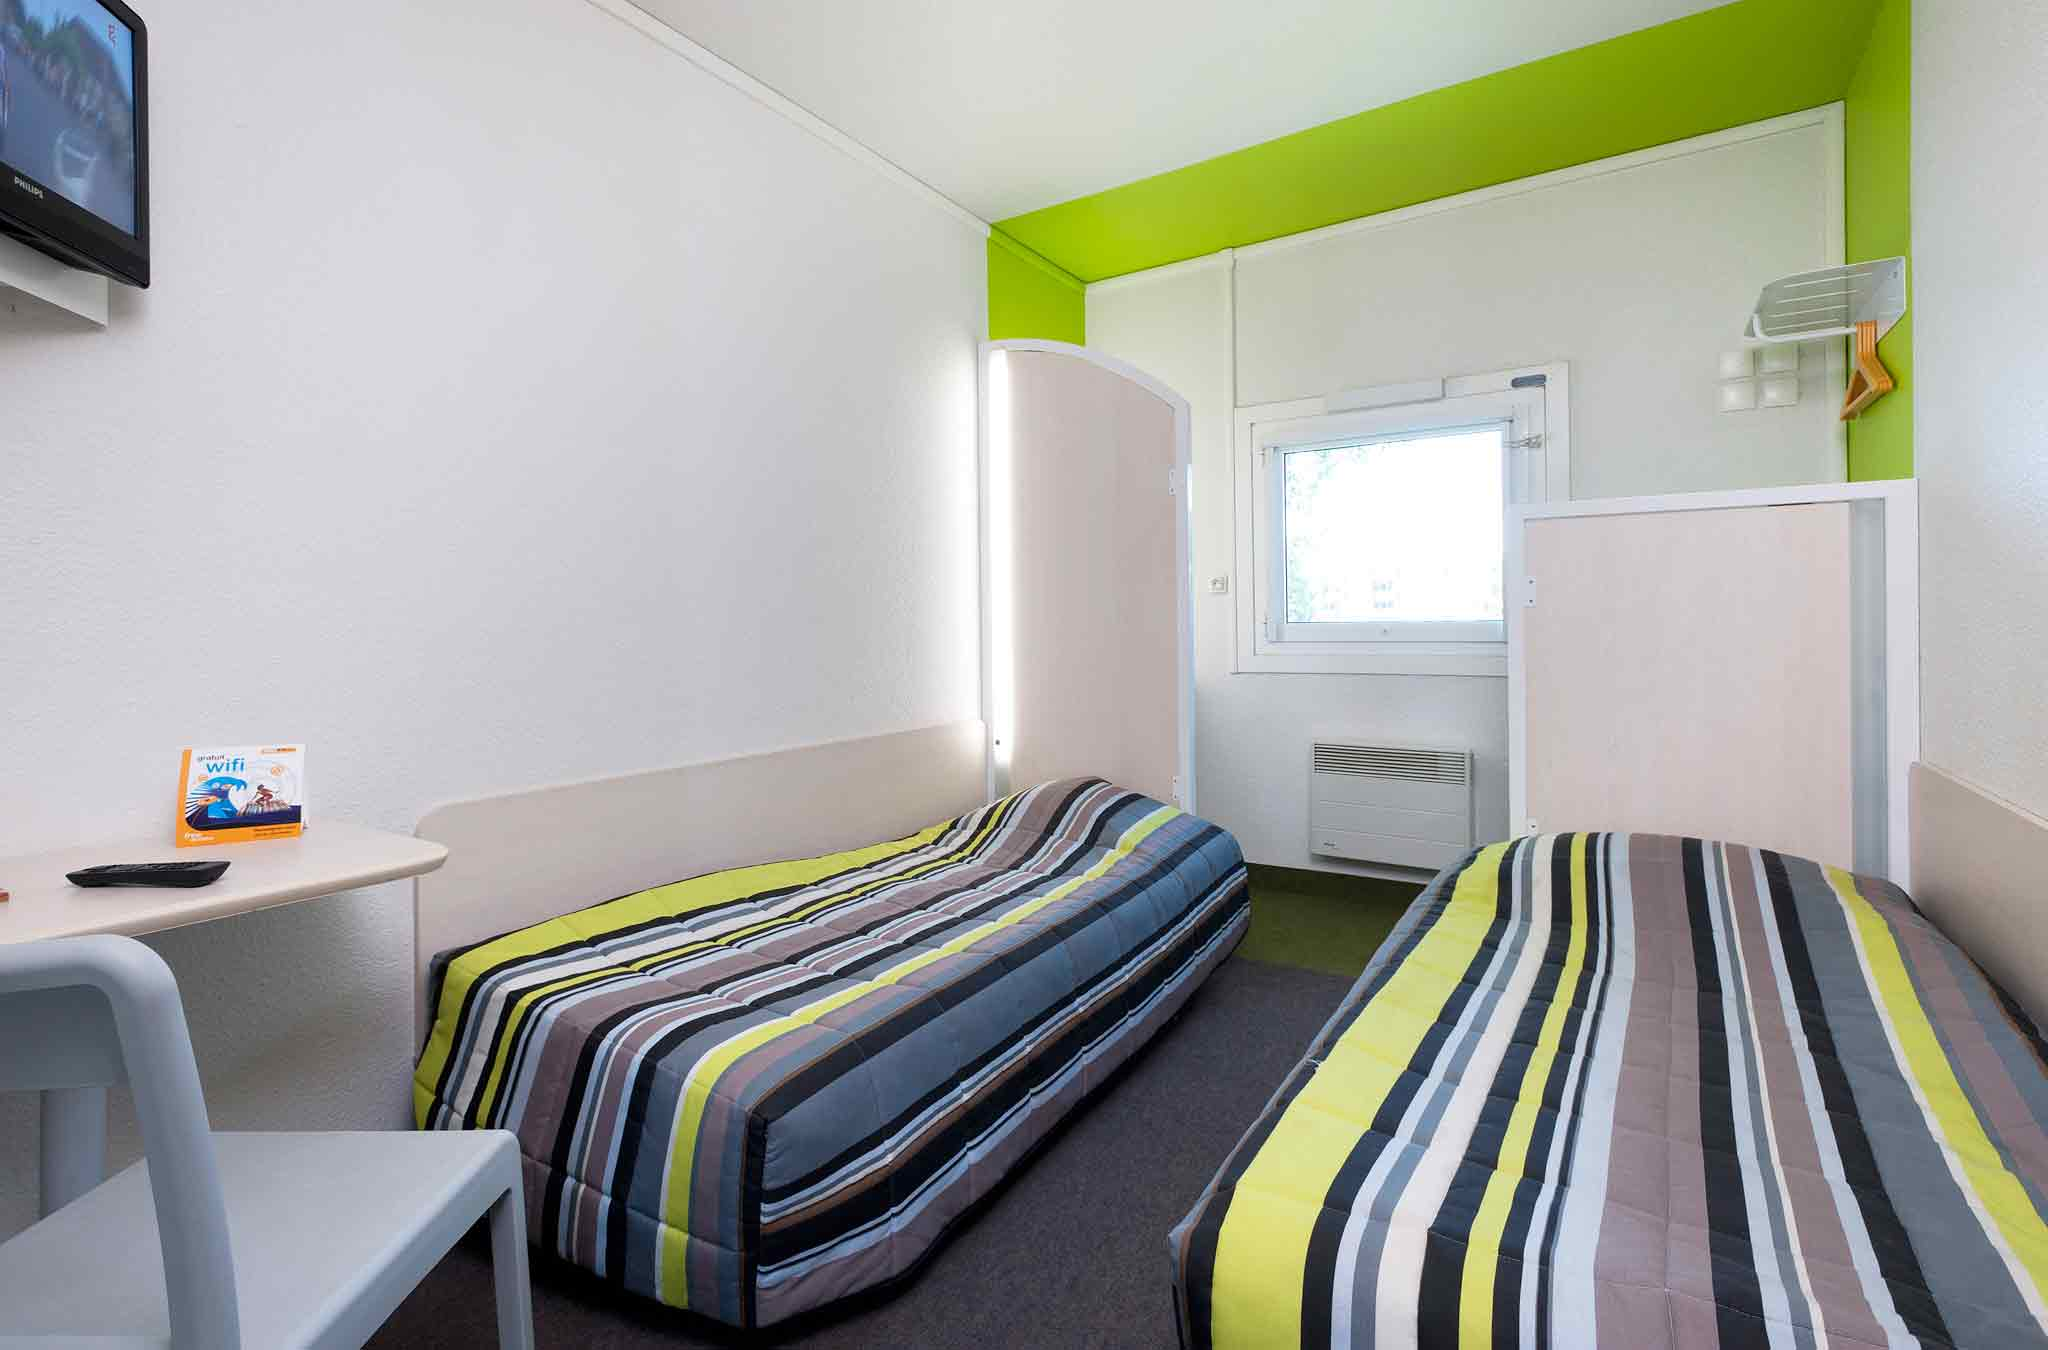 Hotel – hotelF1 Narbonne Sud